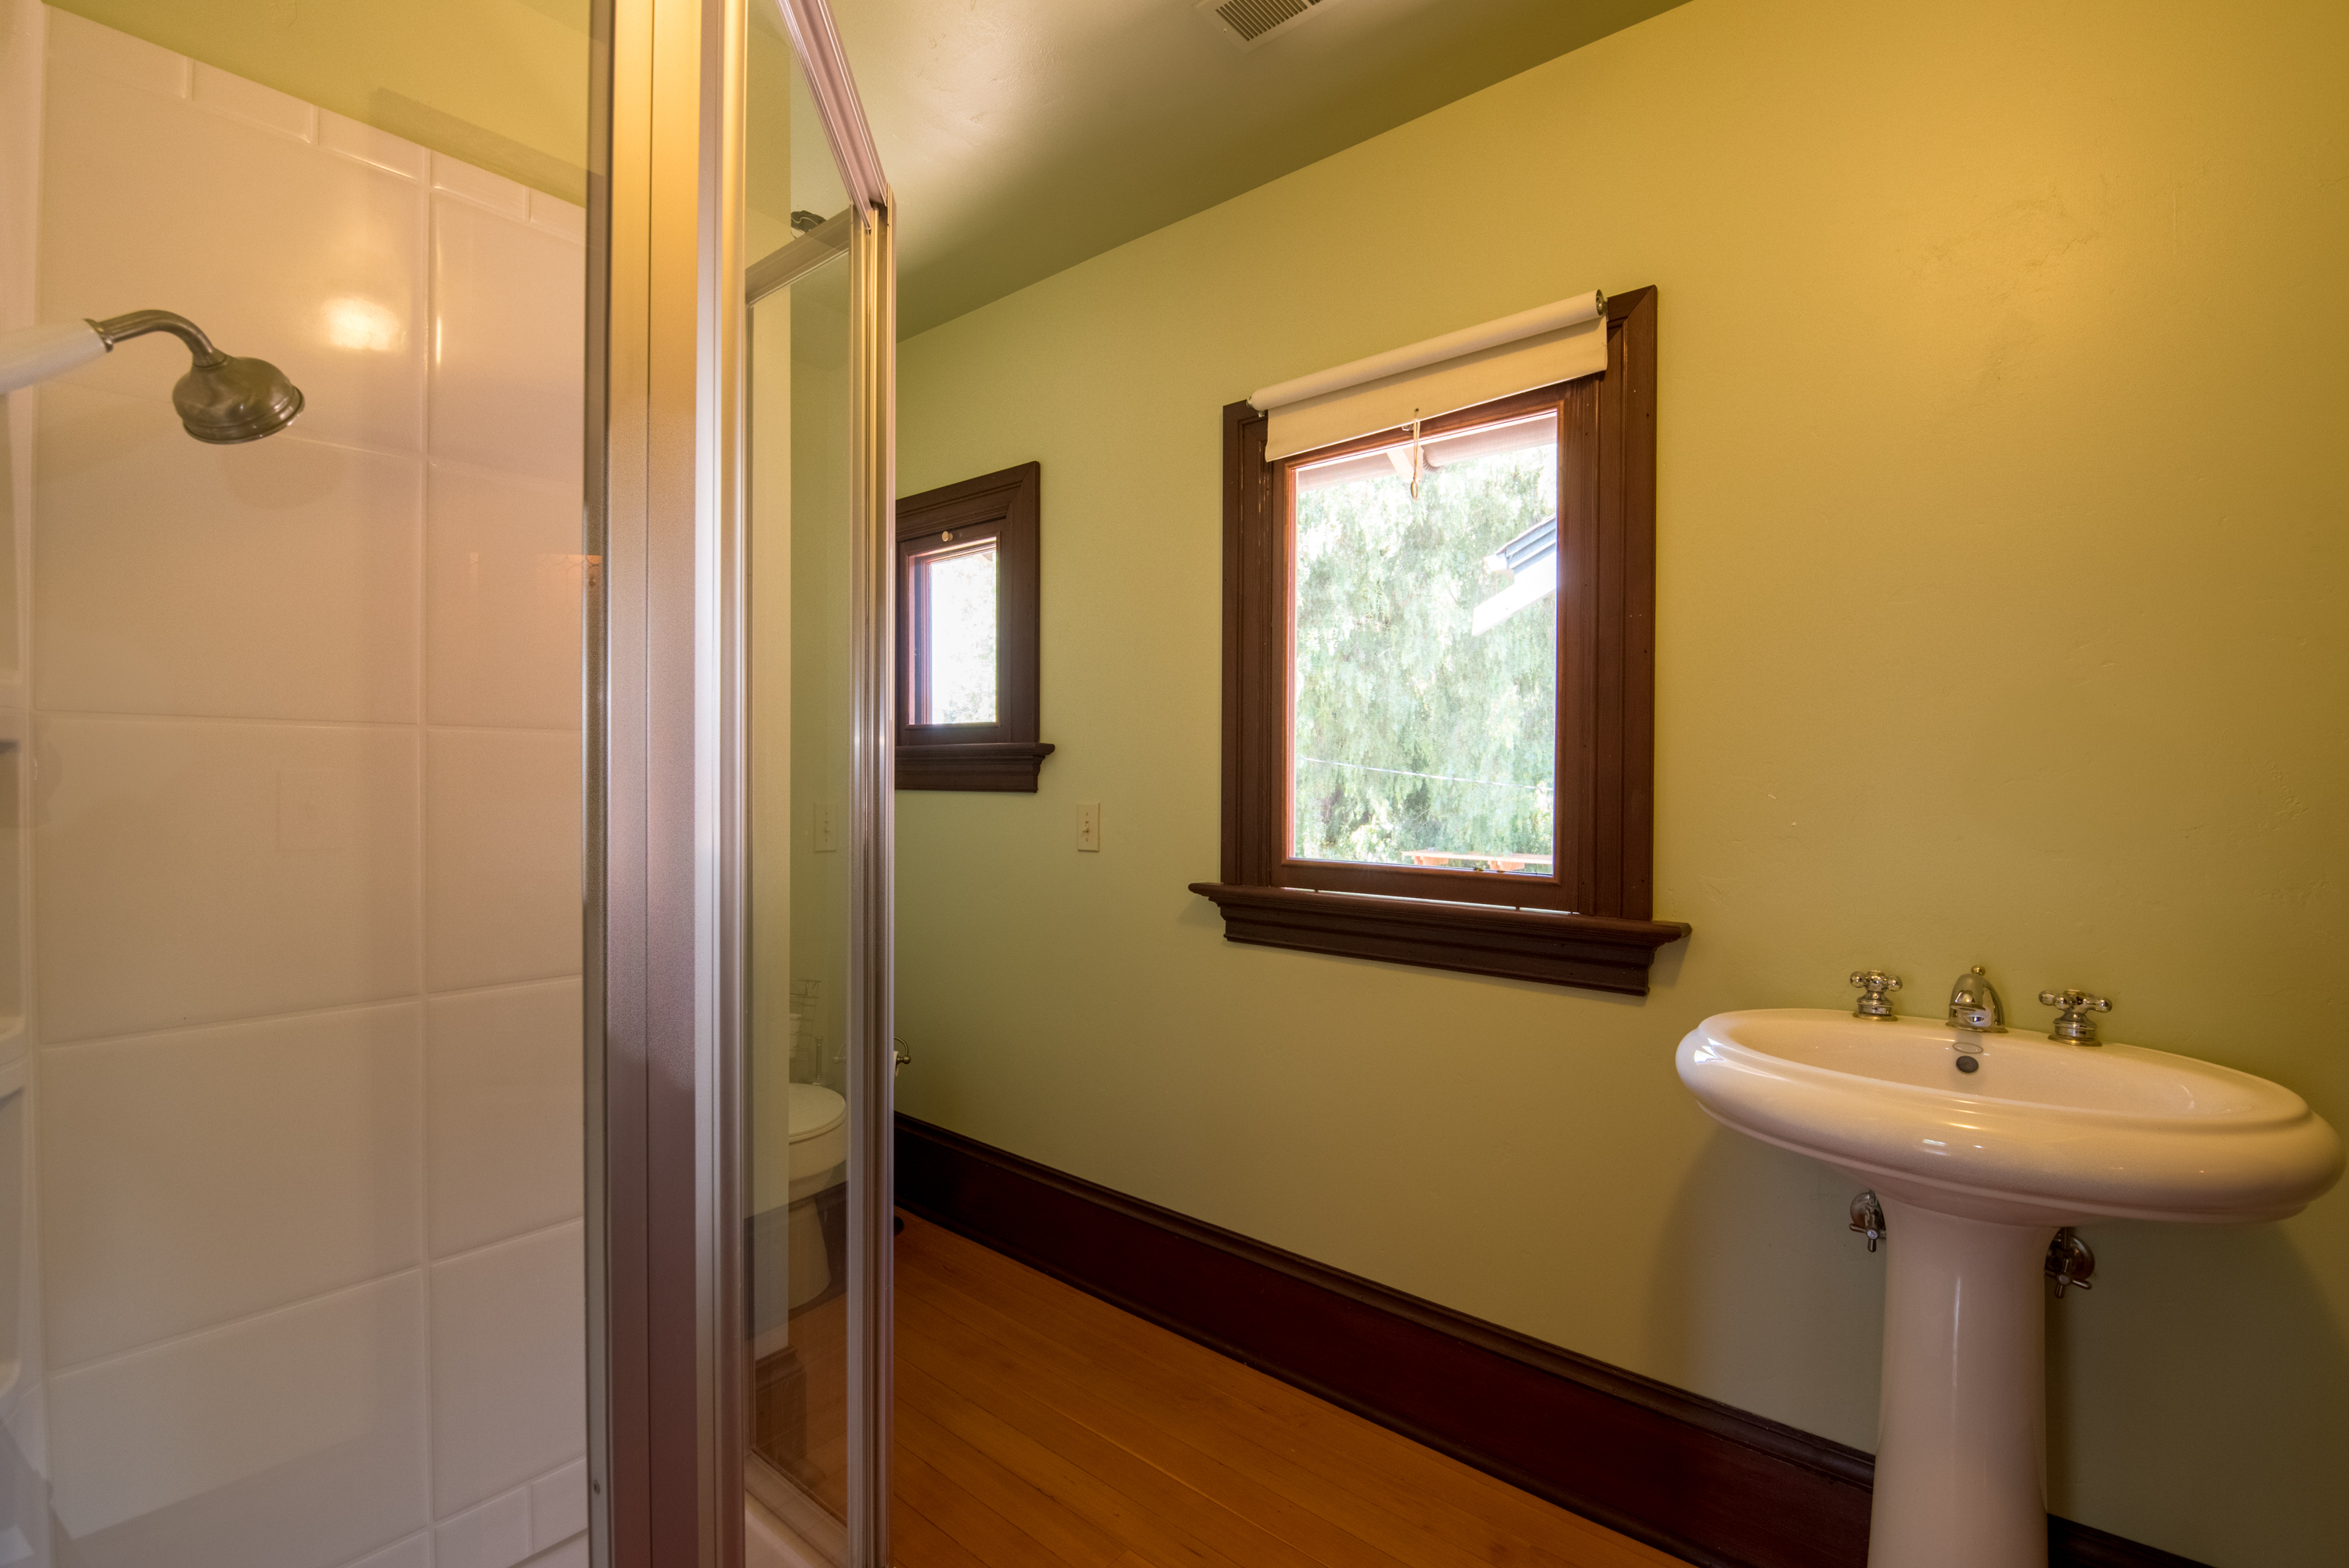 superb_elegant_real_estate_photographer_sfbayarea-049.JPG